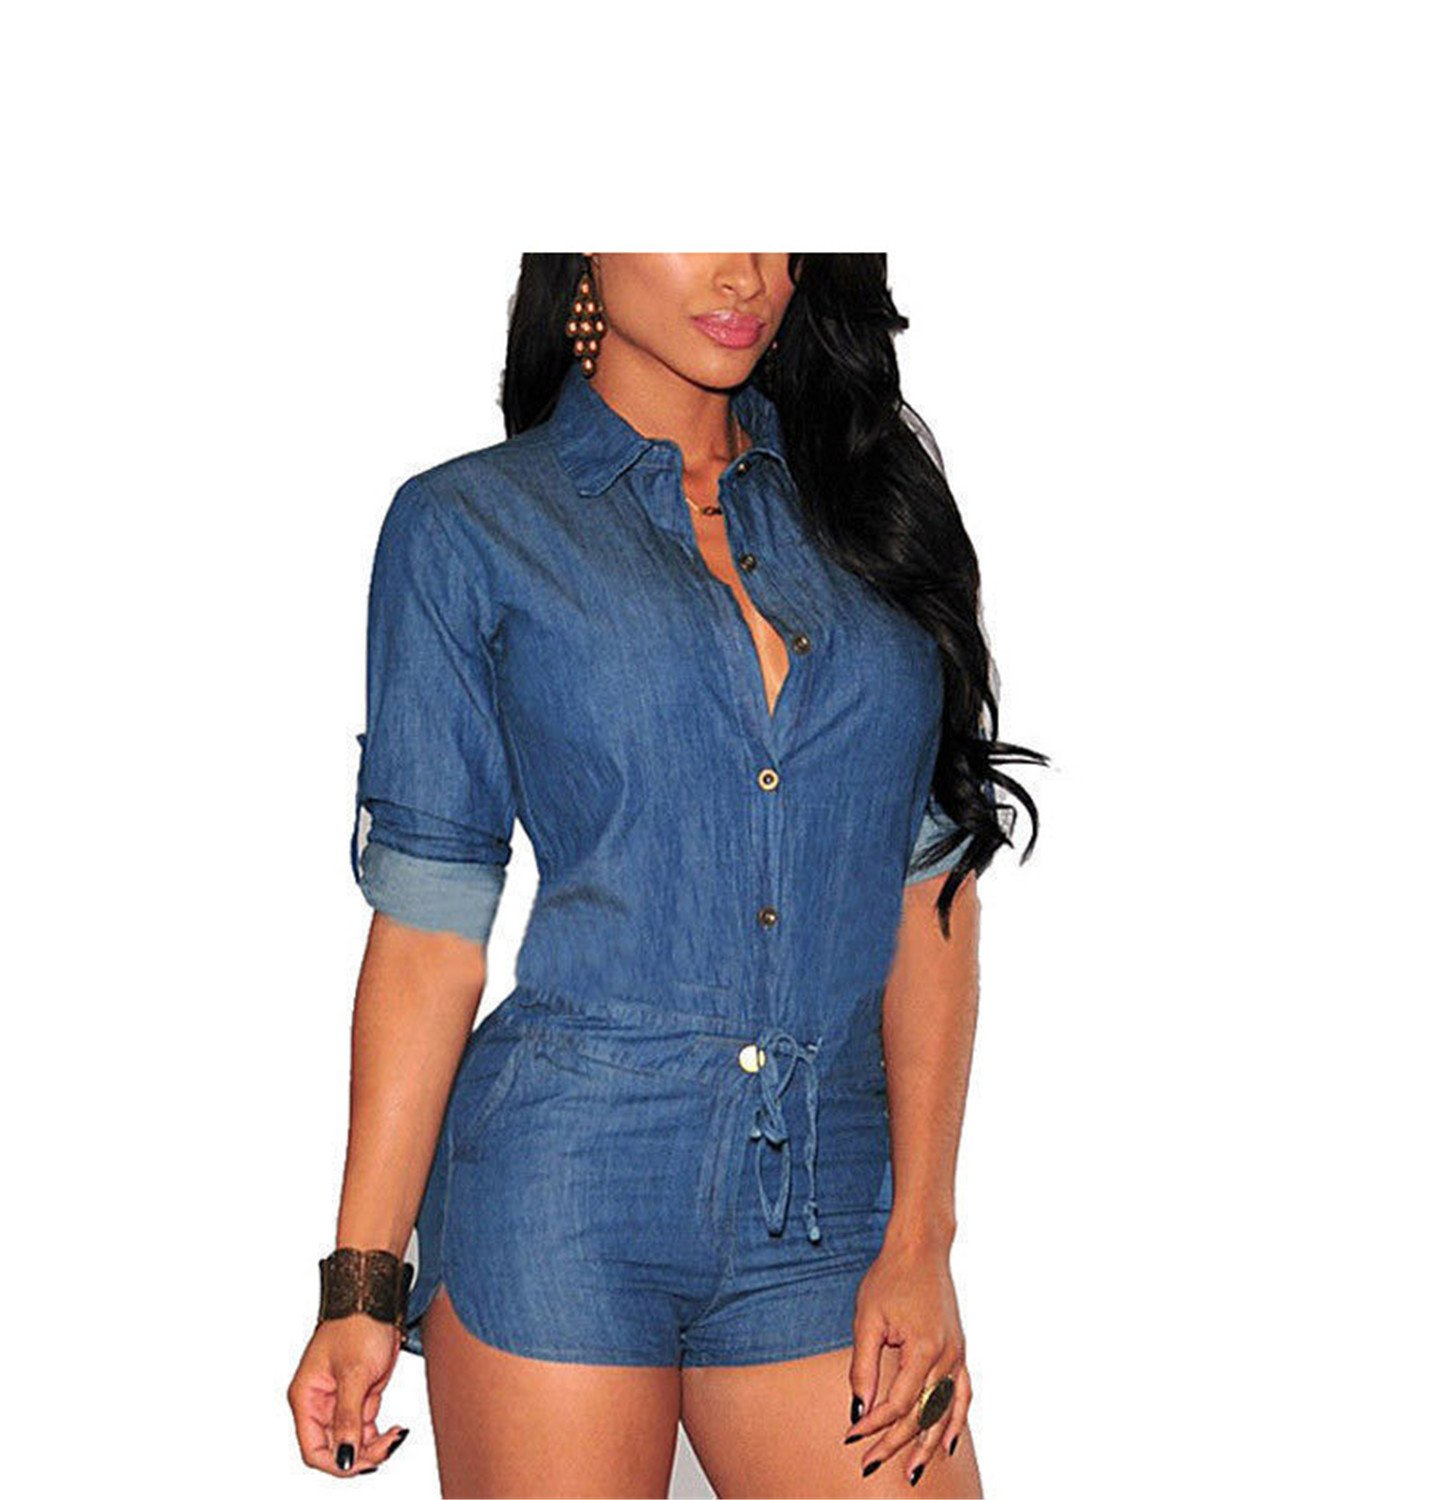 Ygosoon Collar Playsuits Jeans Rompers Womens Jumpsuit